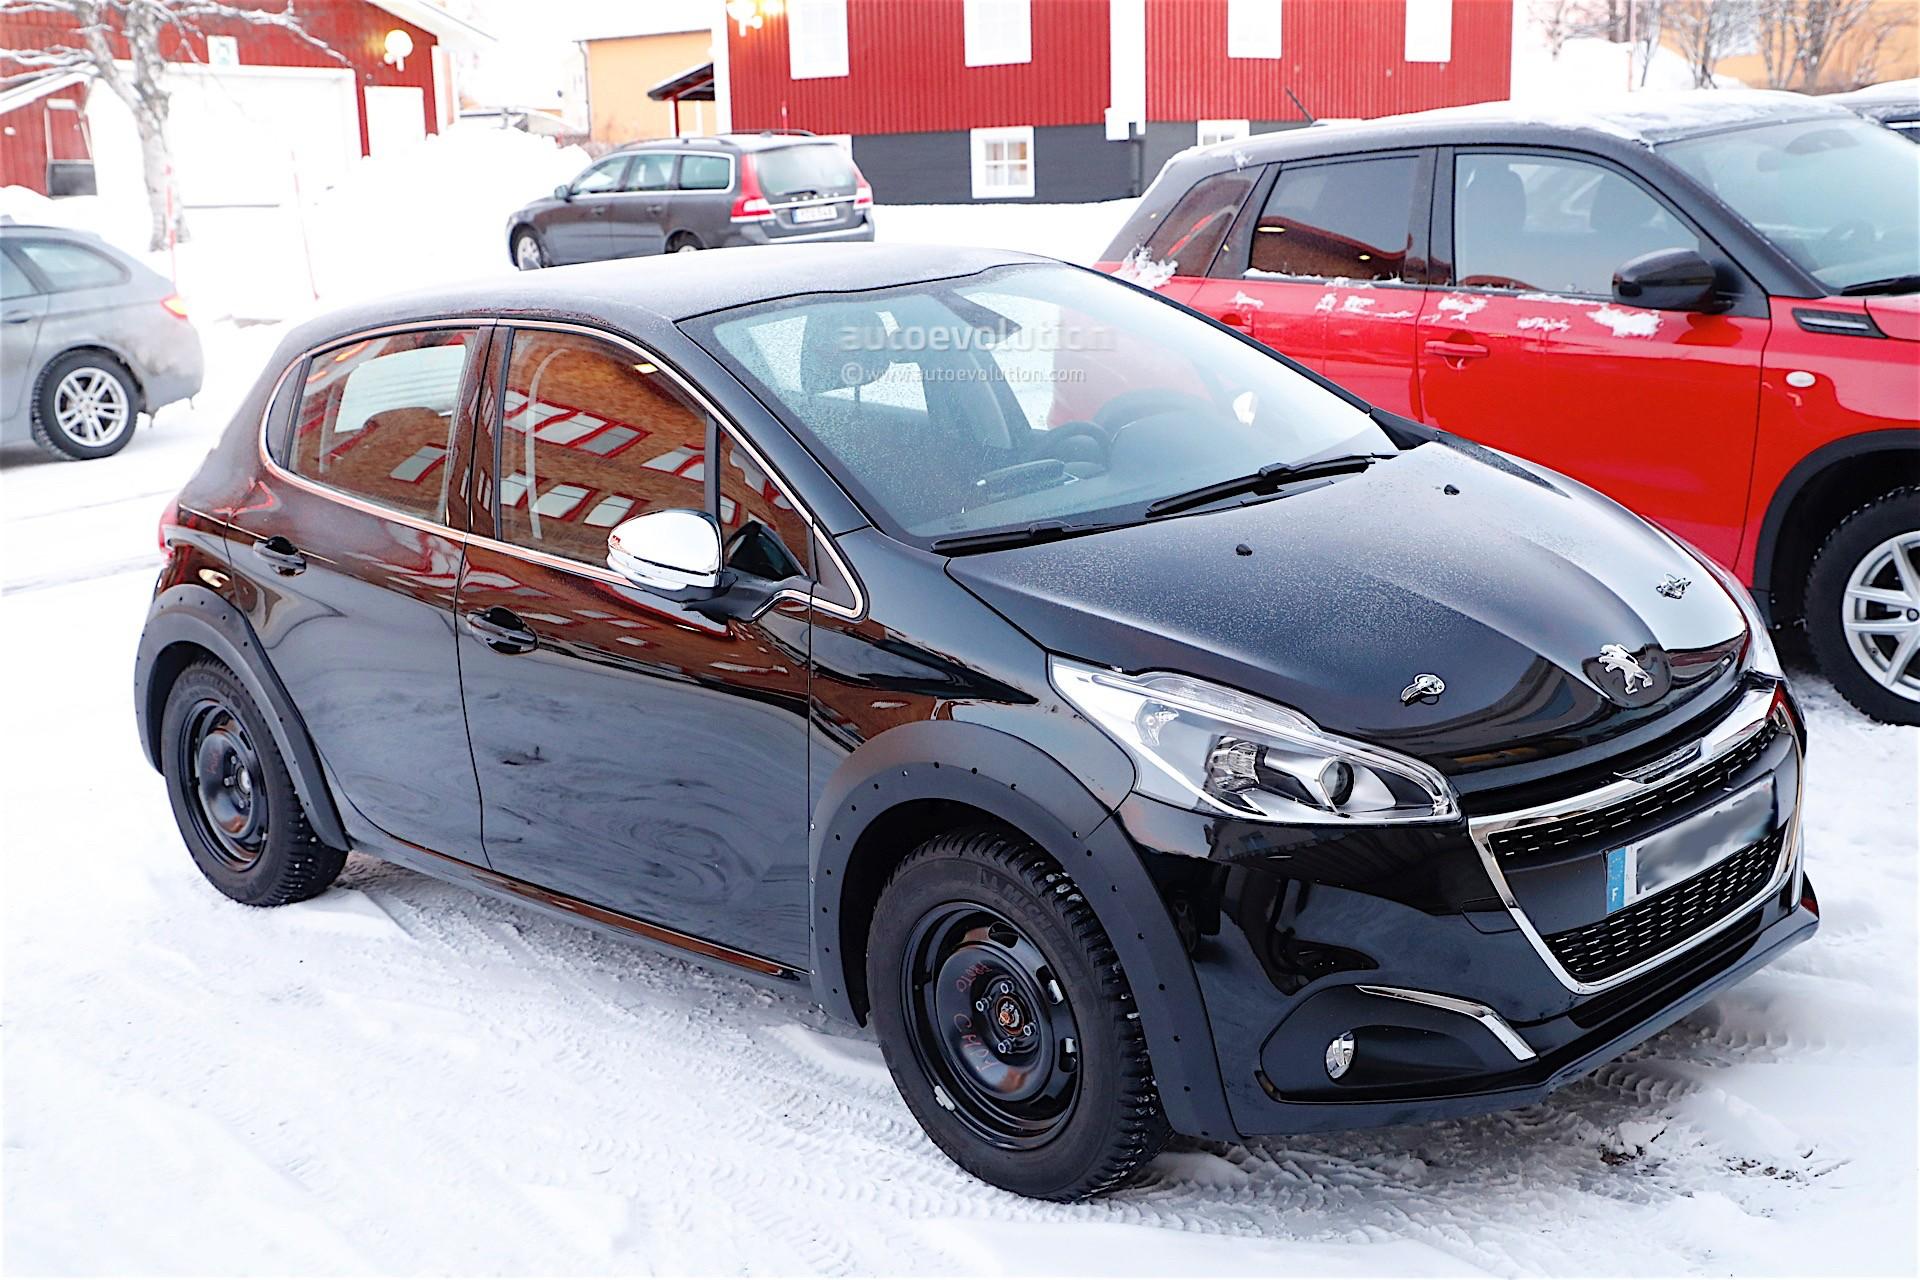 2018 peugeot 208. contemporary 2018 2018 peugeot 208 mule in peugeot t